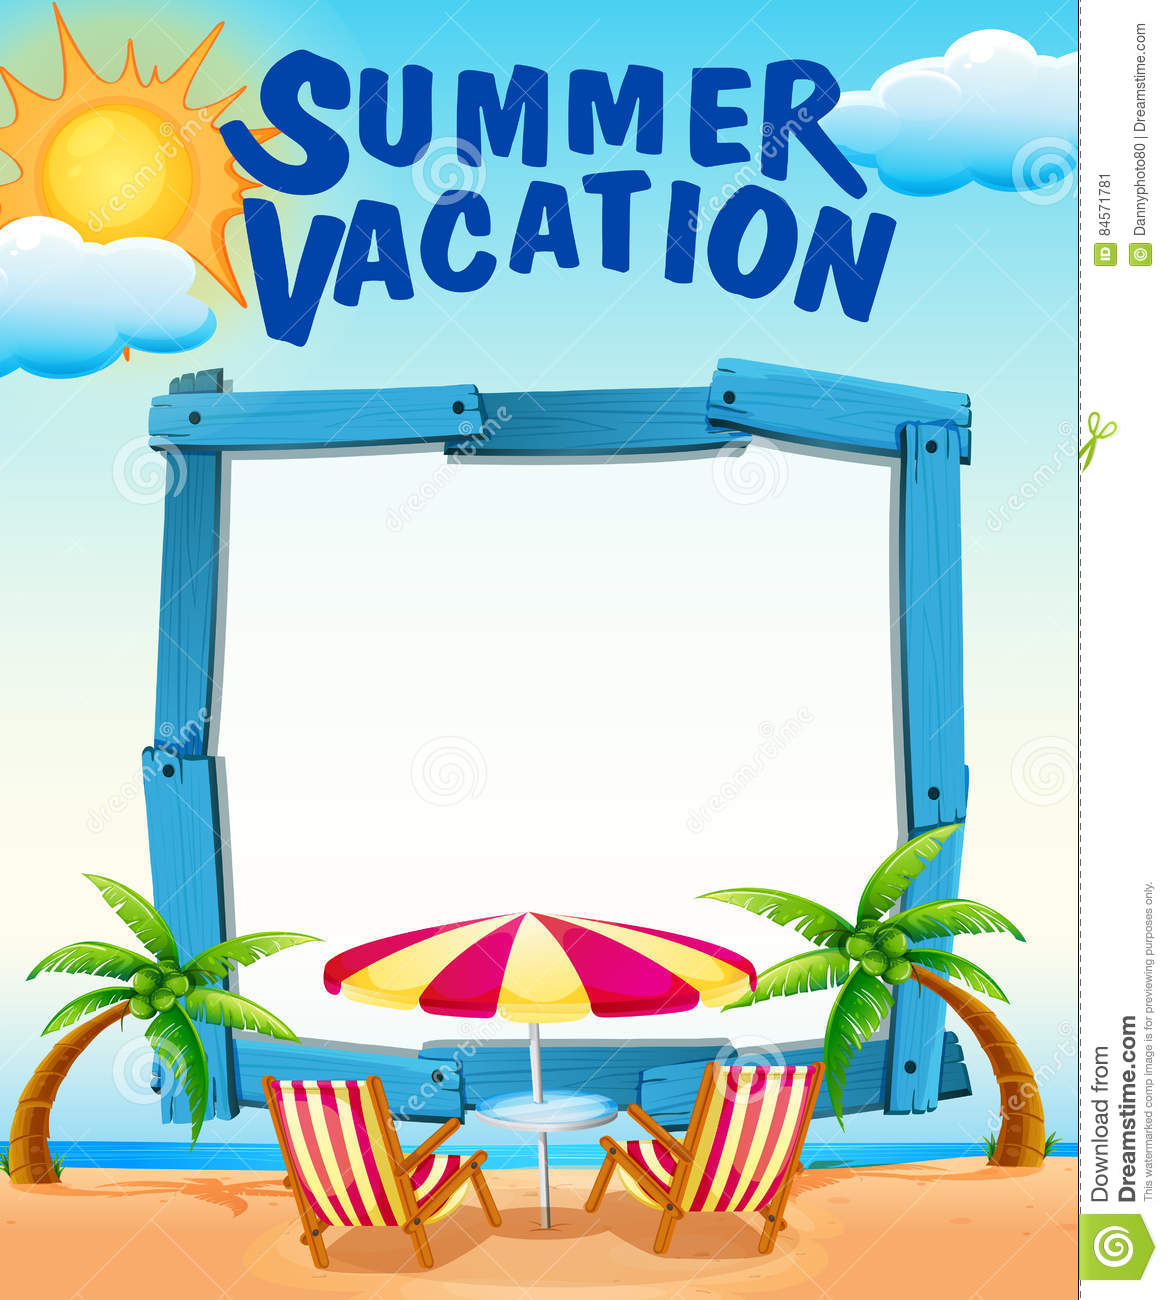 summer vacation clipart - photo #32